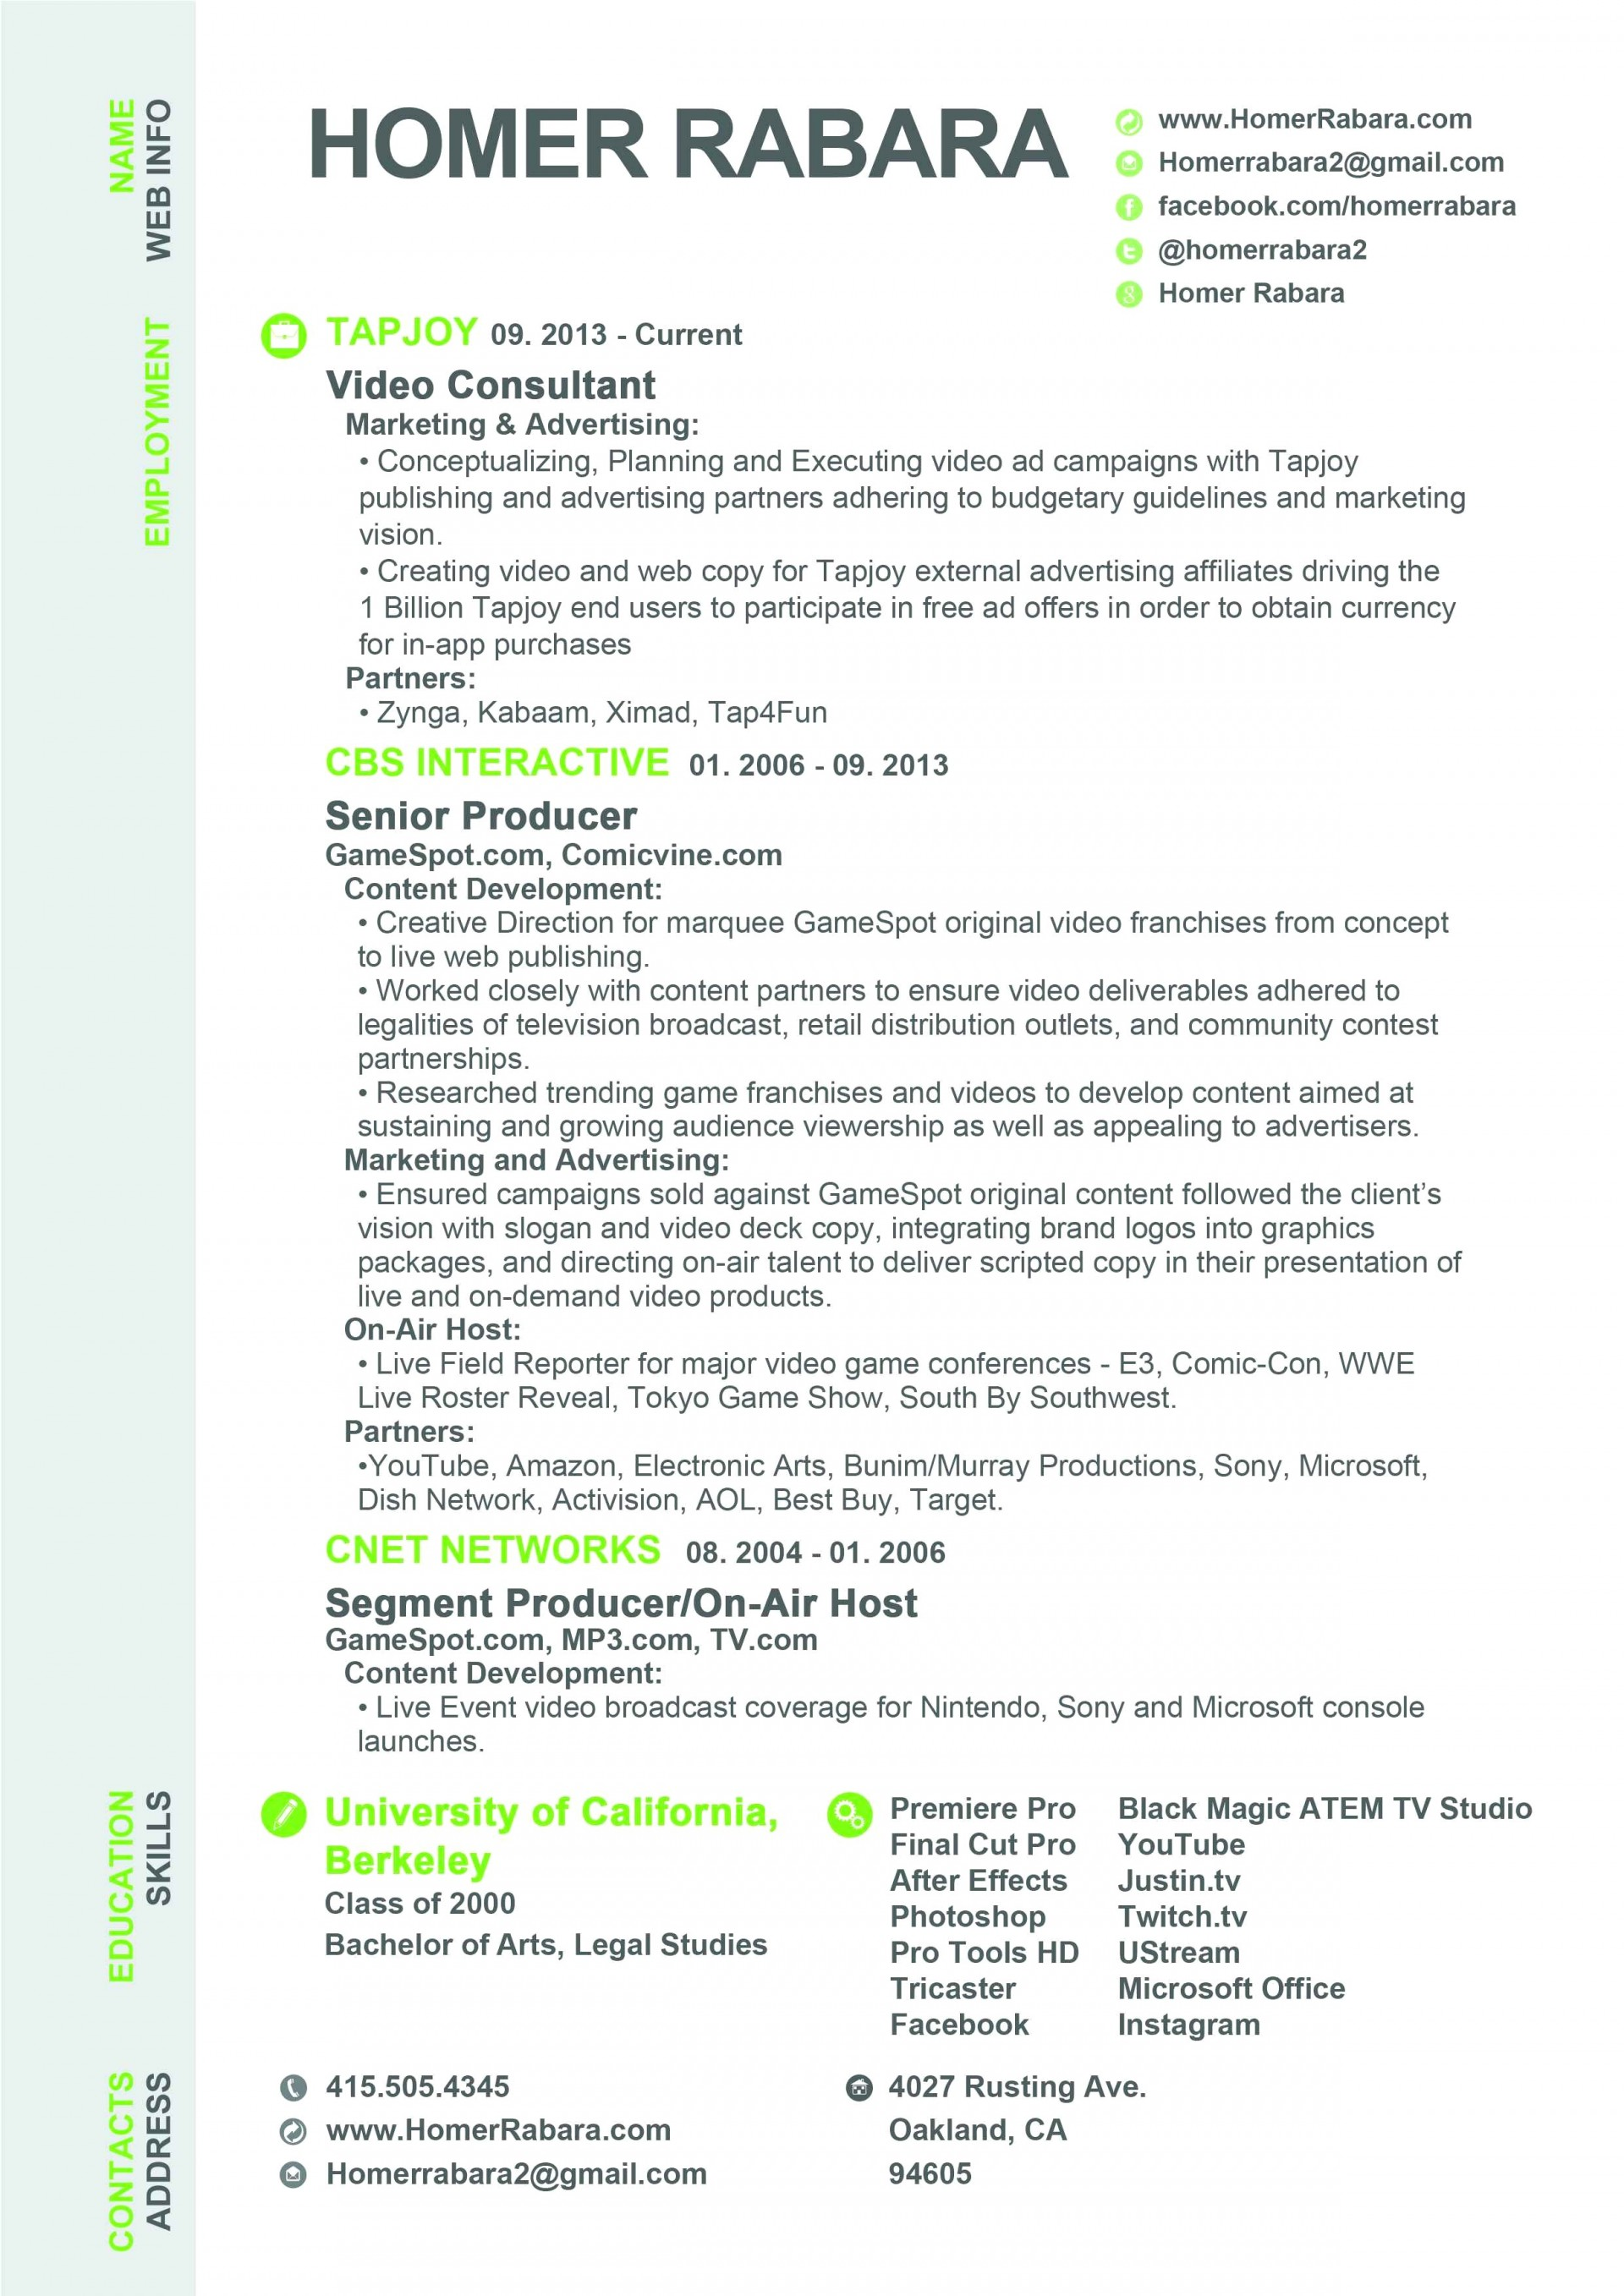 018 Custom College Essays Essay Example The Legitimacy Of Buying Online Editor Resumes Freelance Editing Videographer Resume New Video Excellent Writing Service 1920